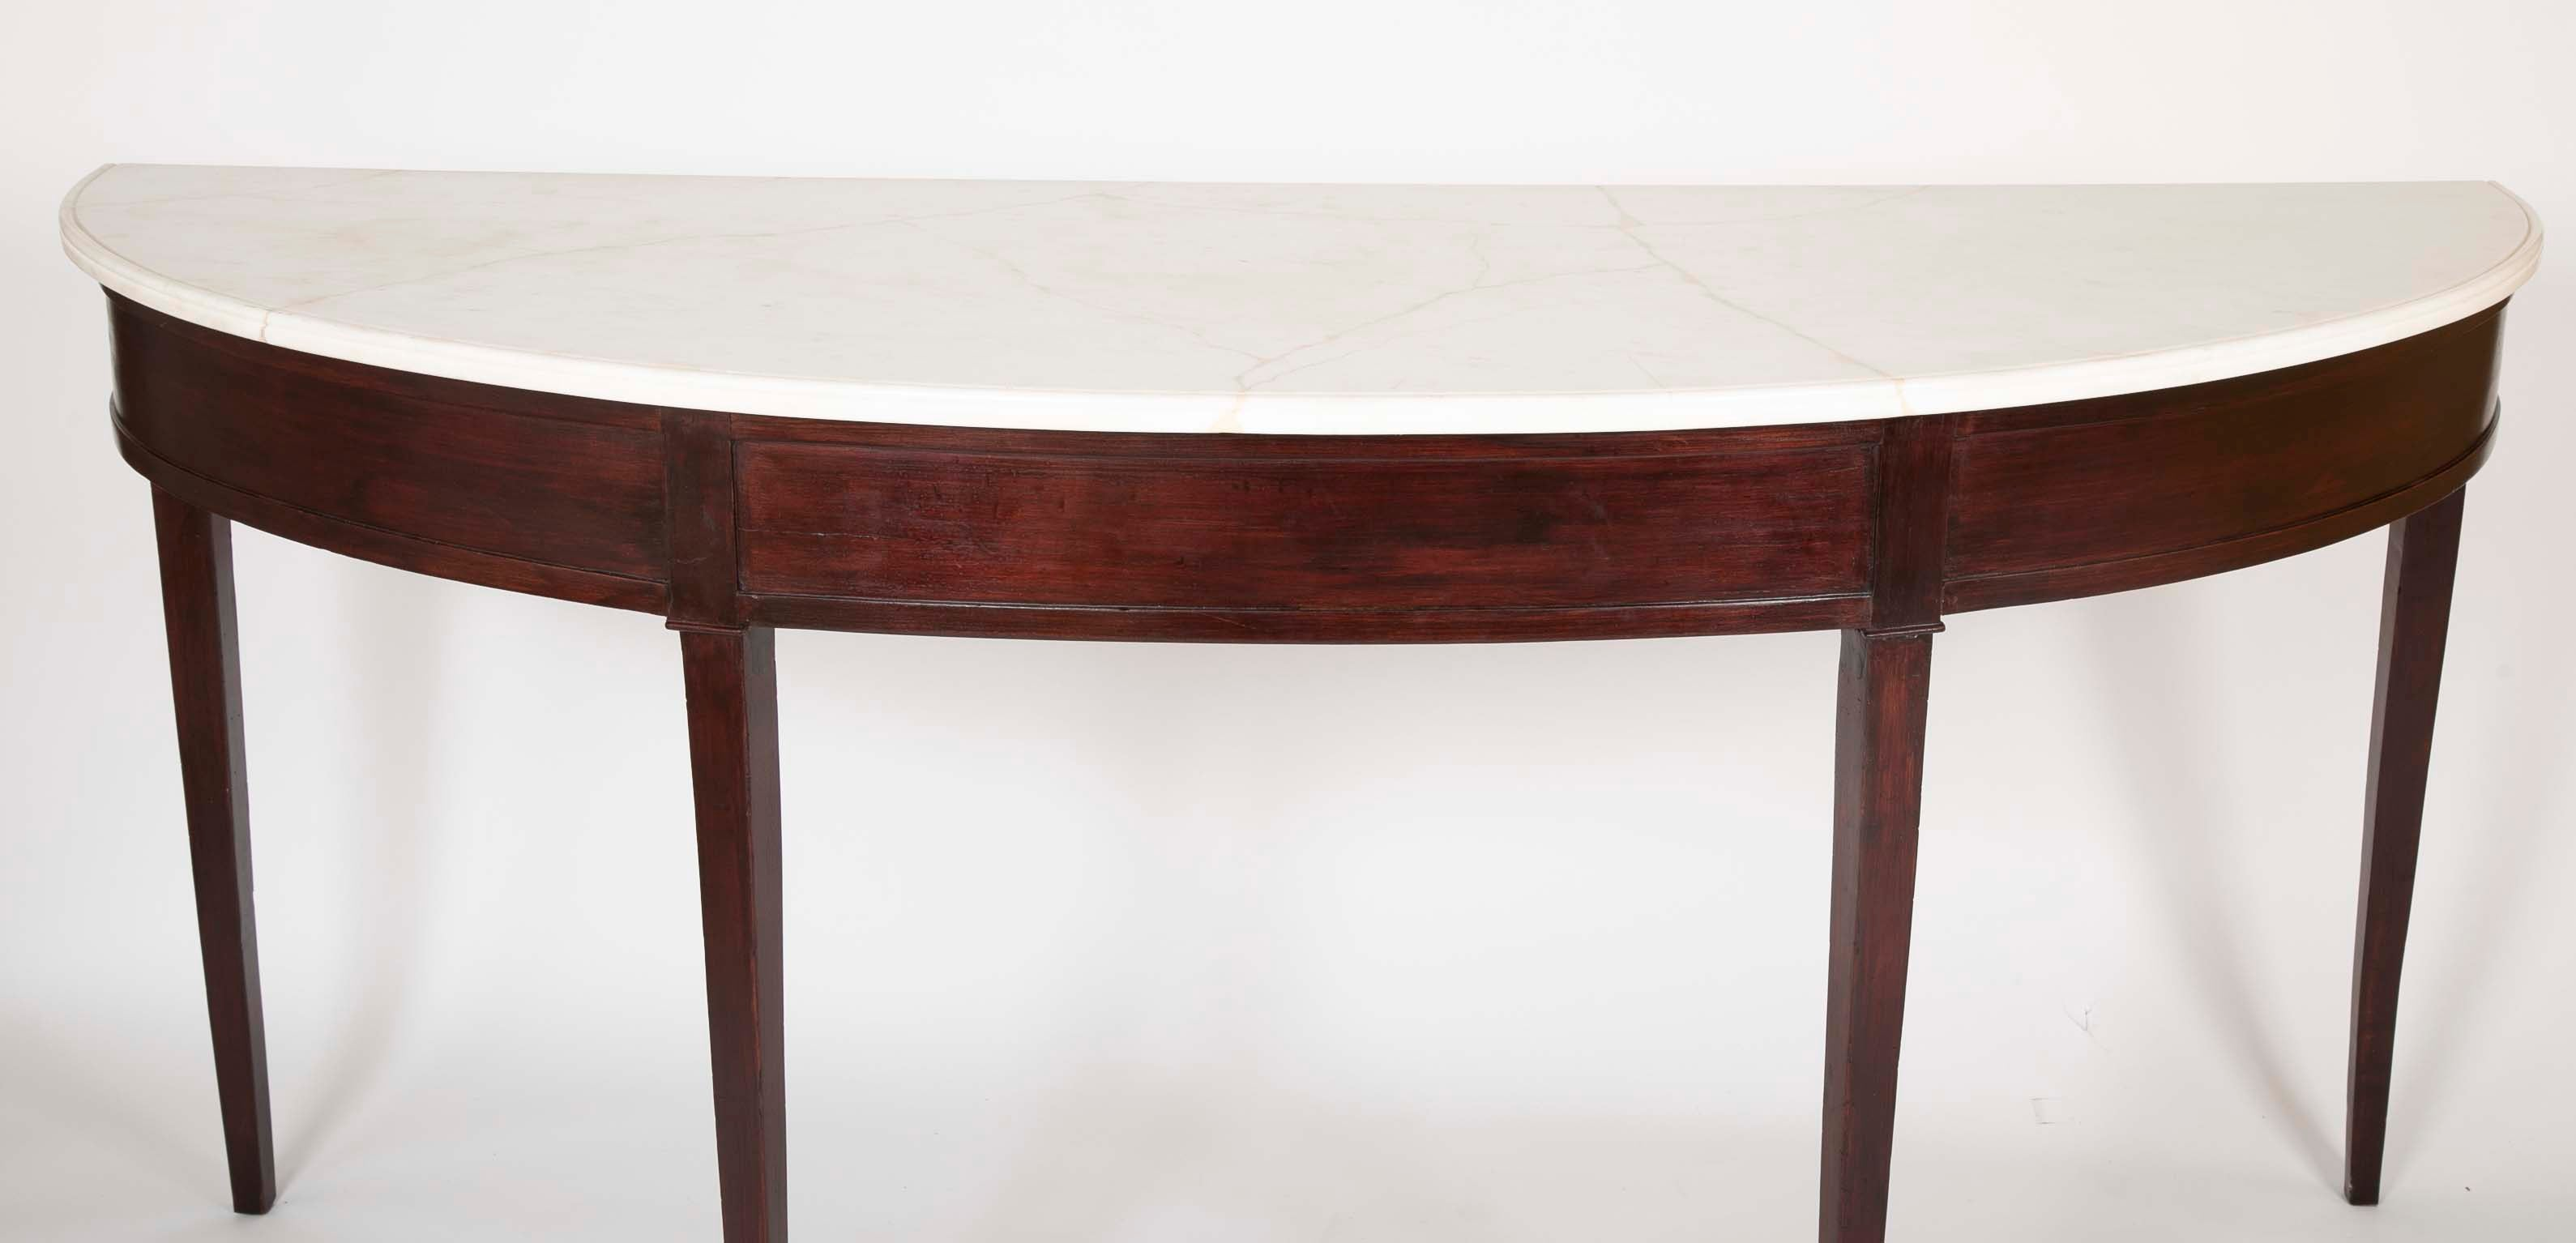 A Beautiful Marble Top Demi Lune Console Table